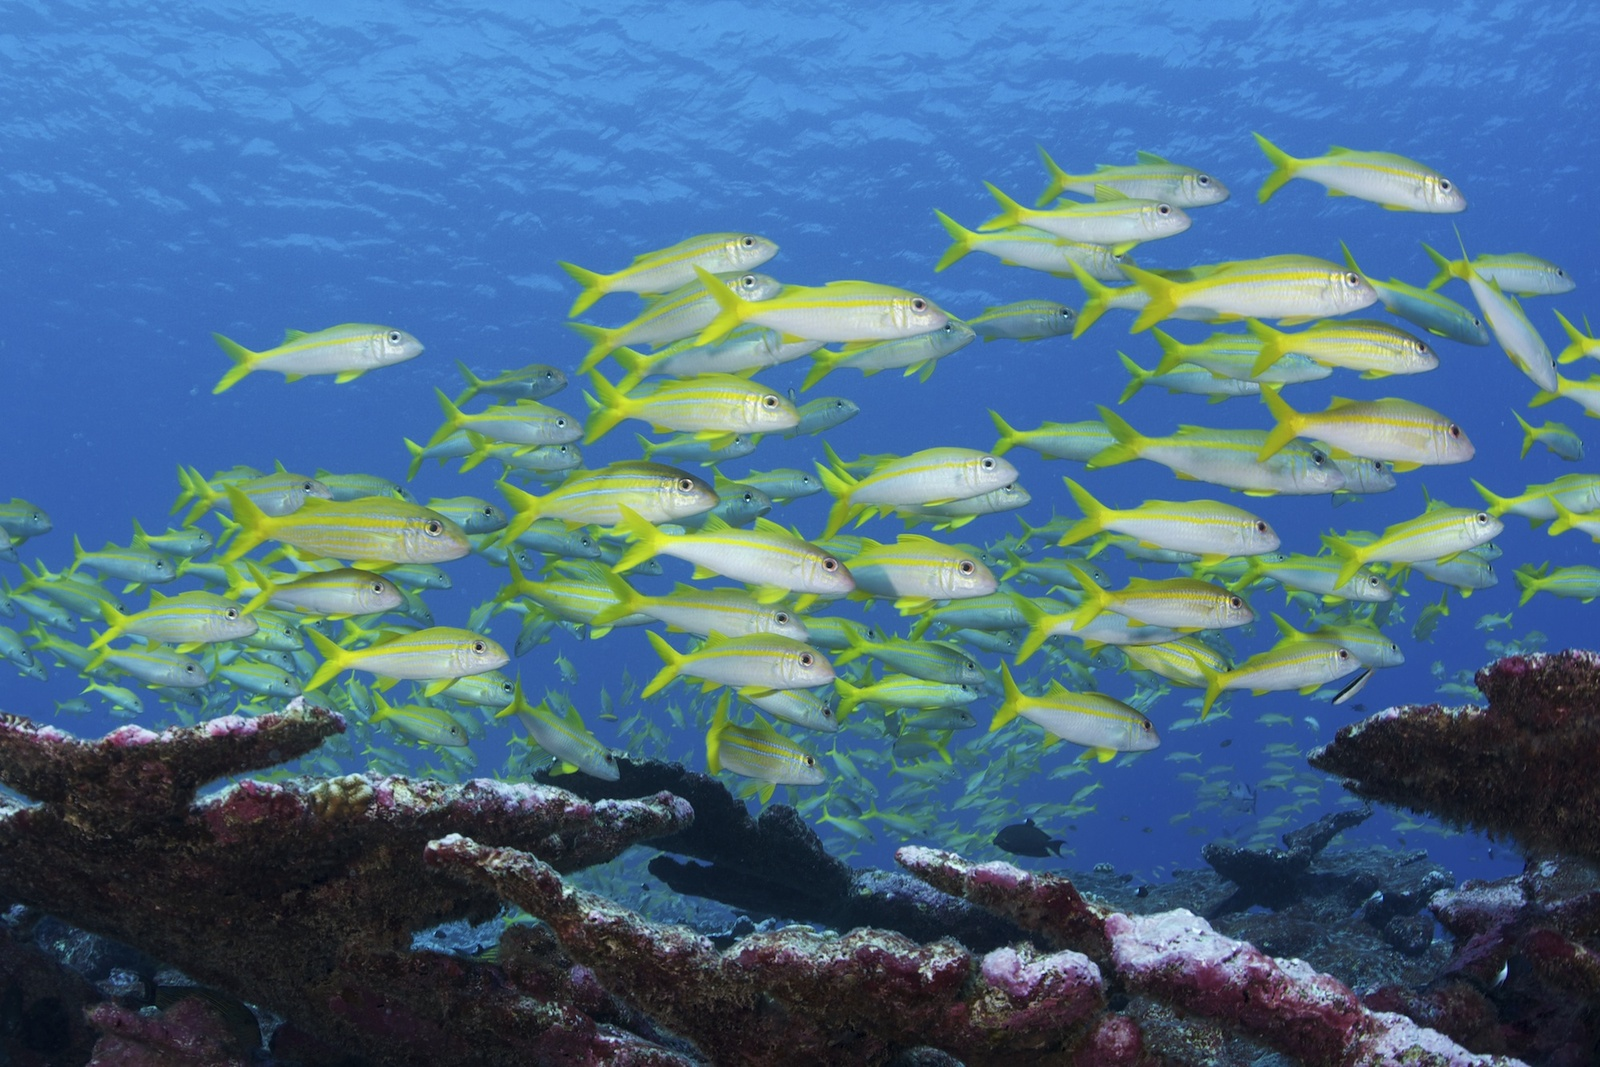 Conservation International Completes Funding to Protect 6.7 Million sq. km. of the Pacific Ocean